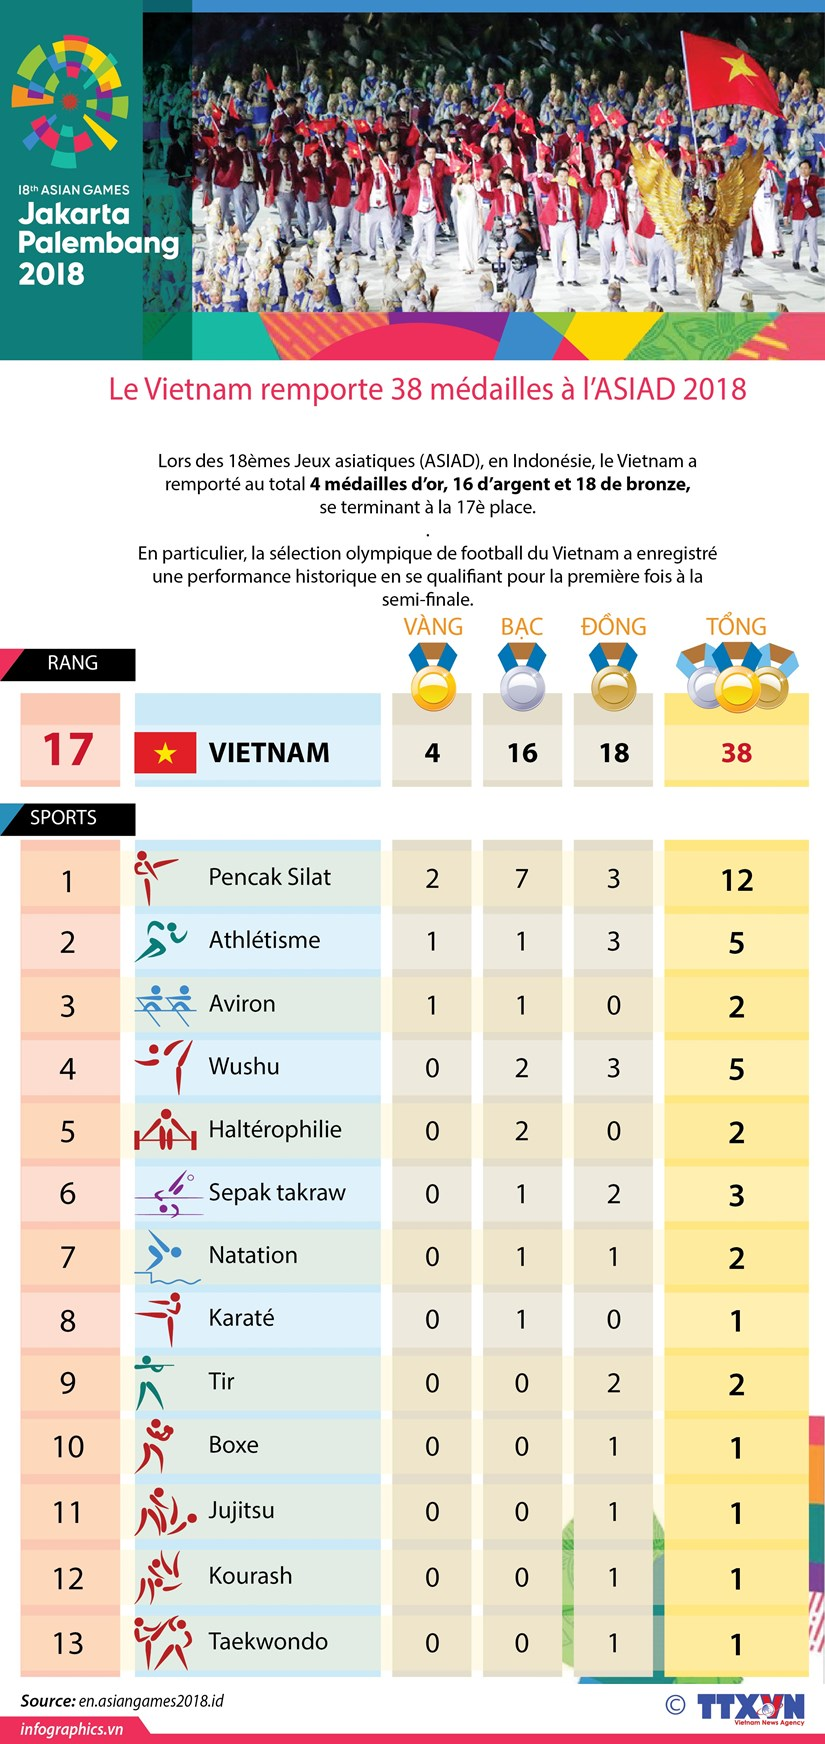 [Infographie] Le Vietnam remporte 38 medailles a l'ASIAD 2018 hinh anh 1